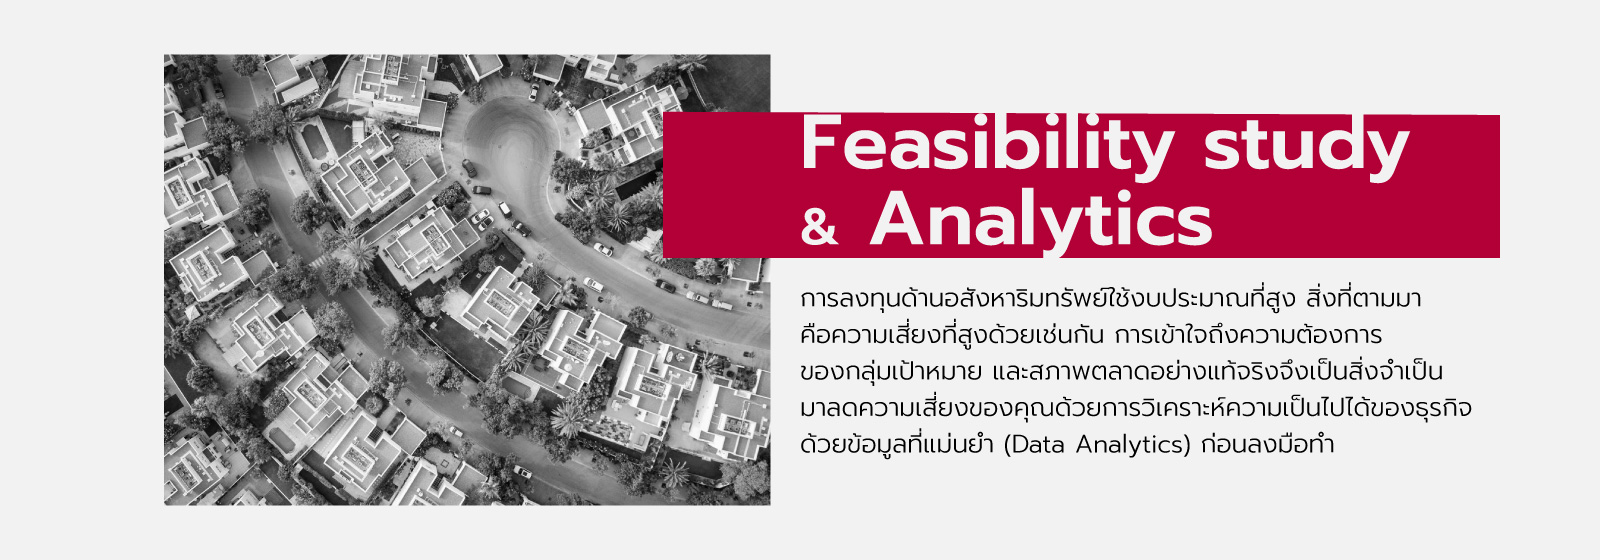 Feasibility study & Analytics